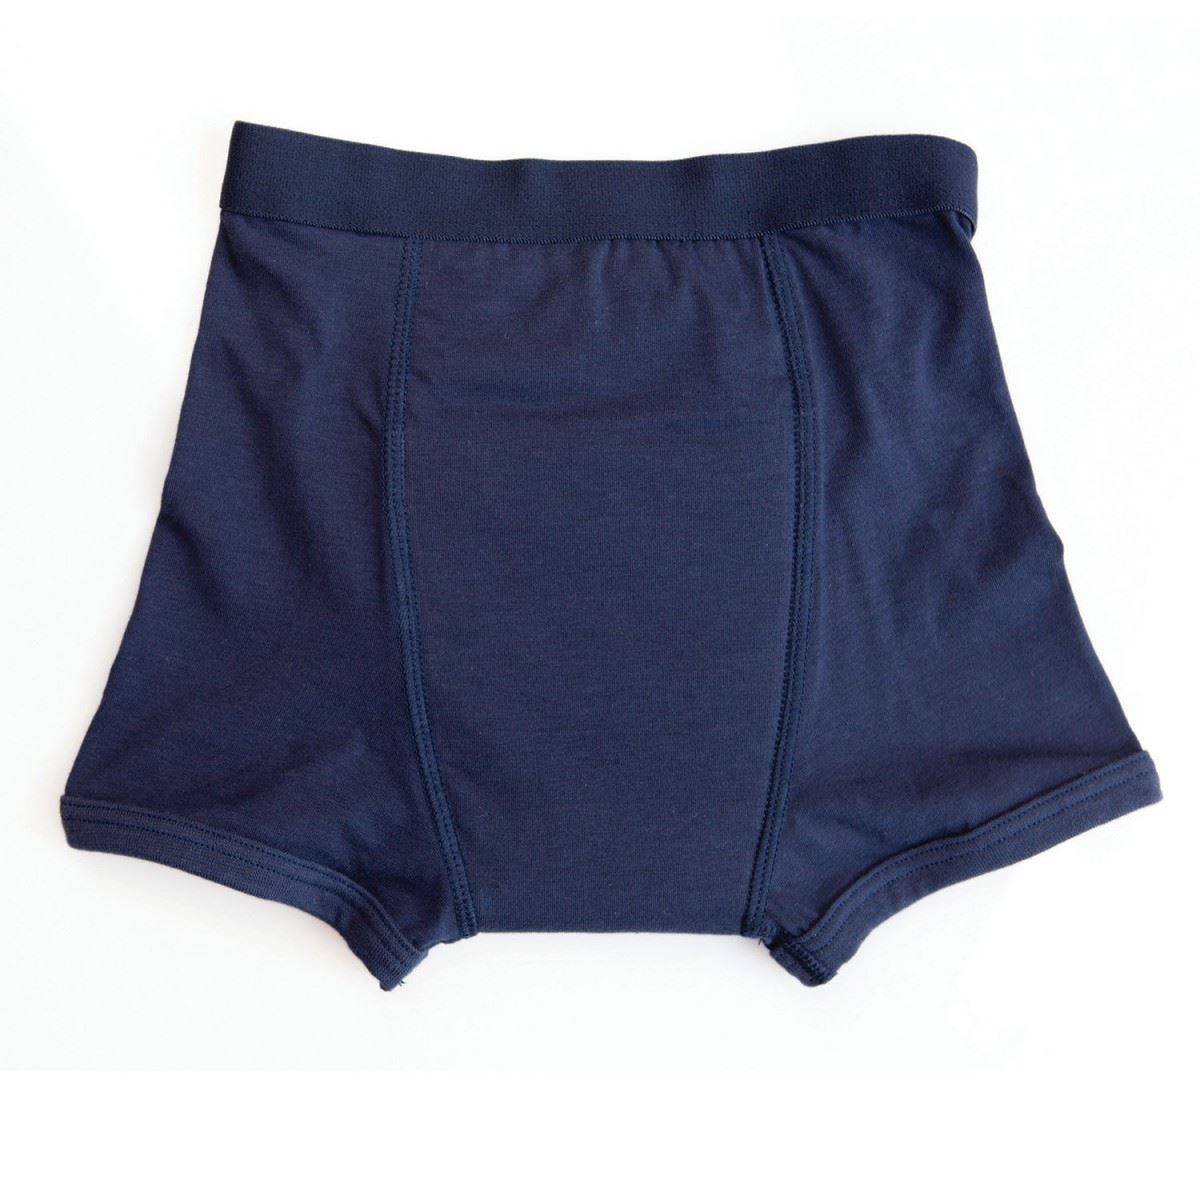 Picture of Conni Kid's Tackers Training (Boxer Style) Reusable Incontinence Pants